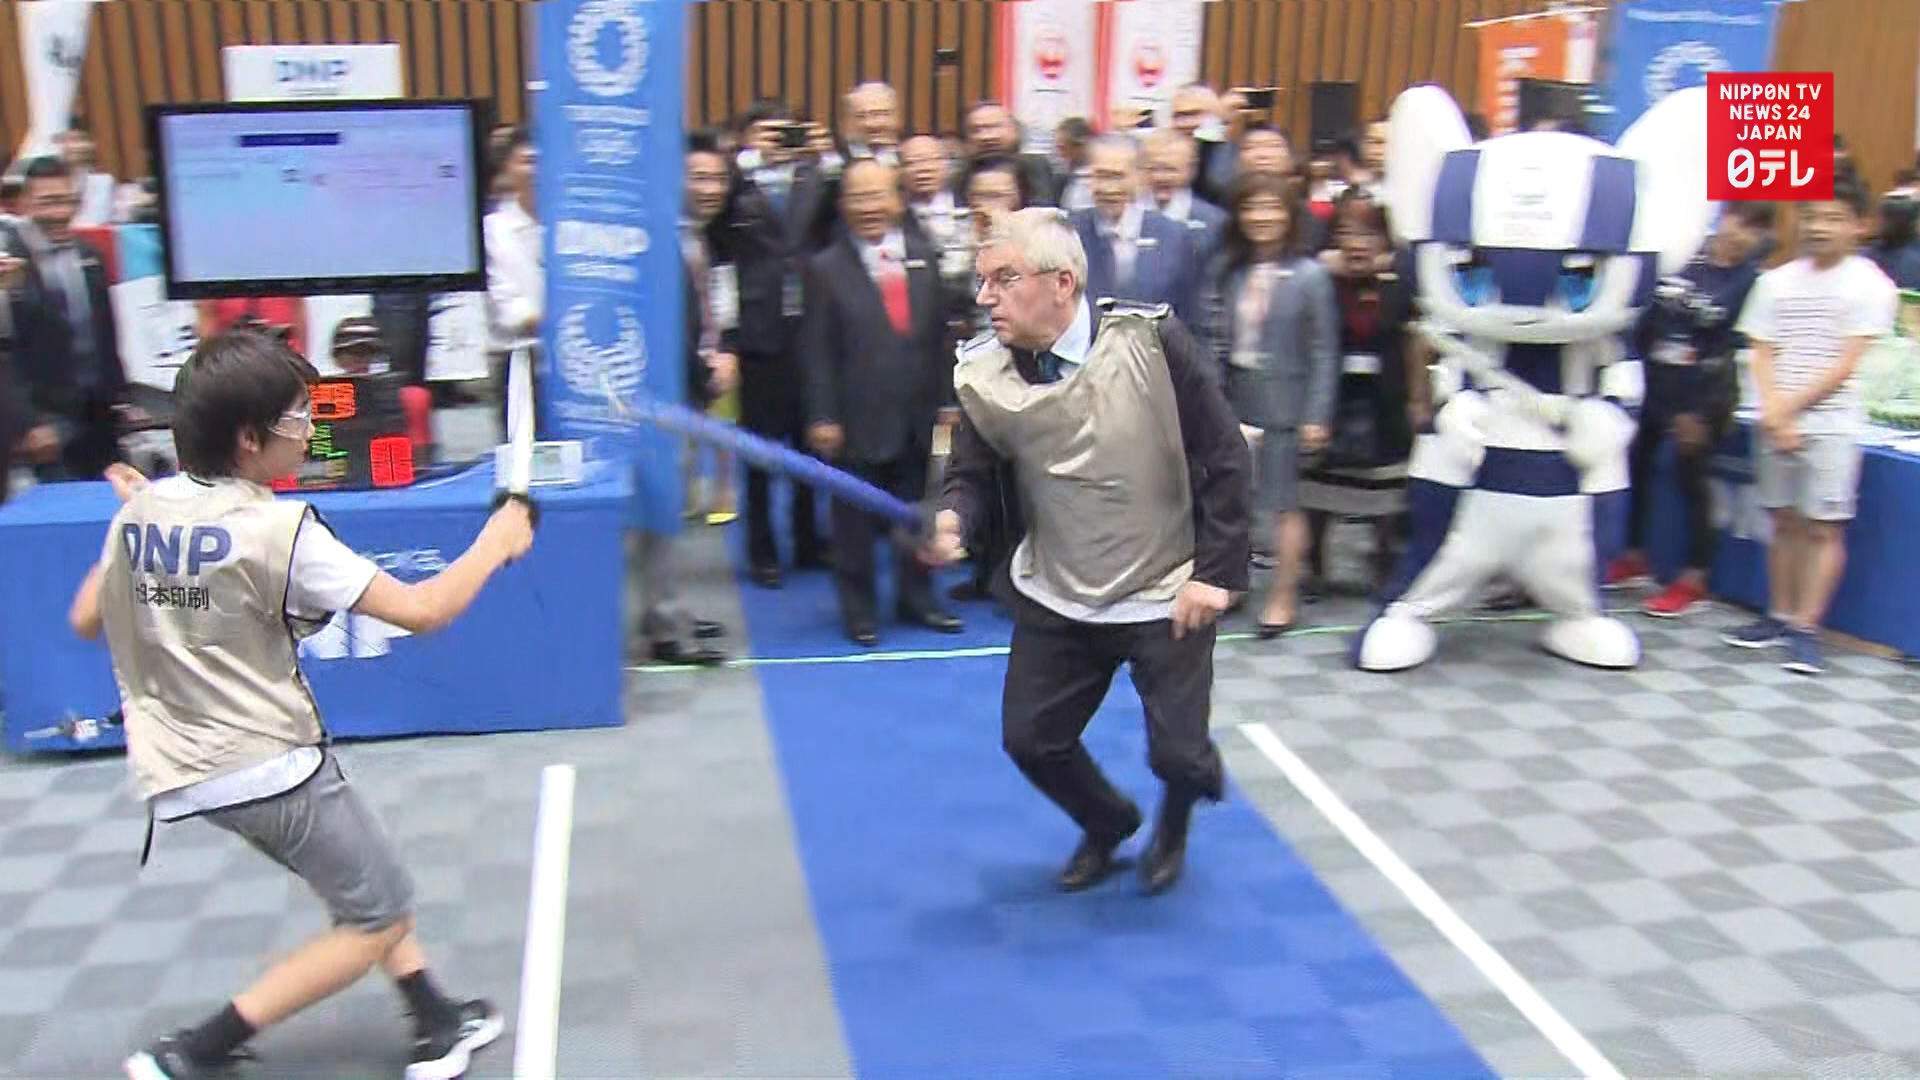 IOC President Bach fences at Tokyo Olympic meeting